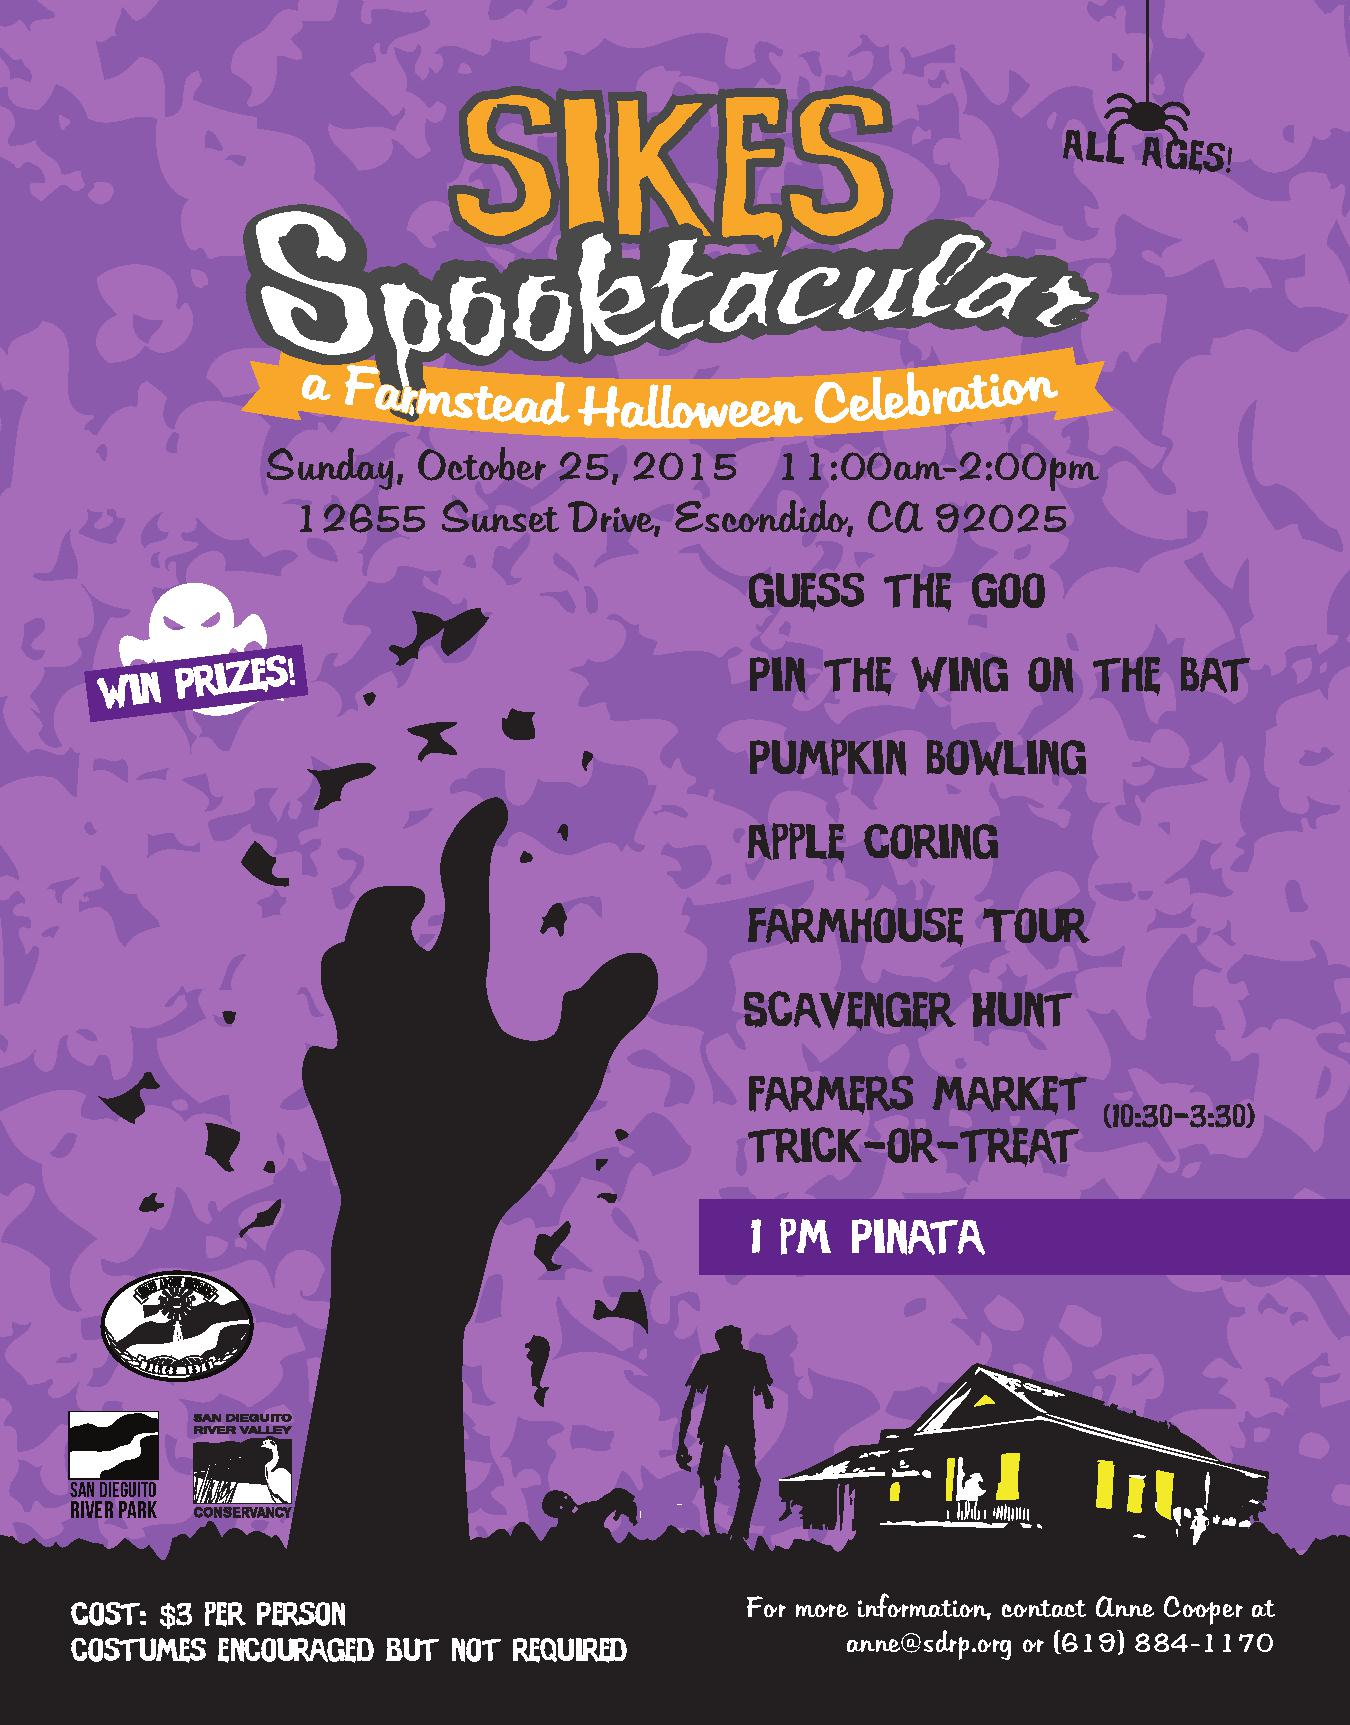 Sikes Spooktacular 2015